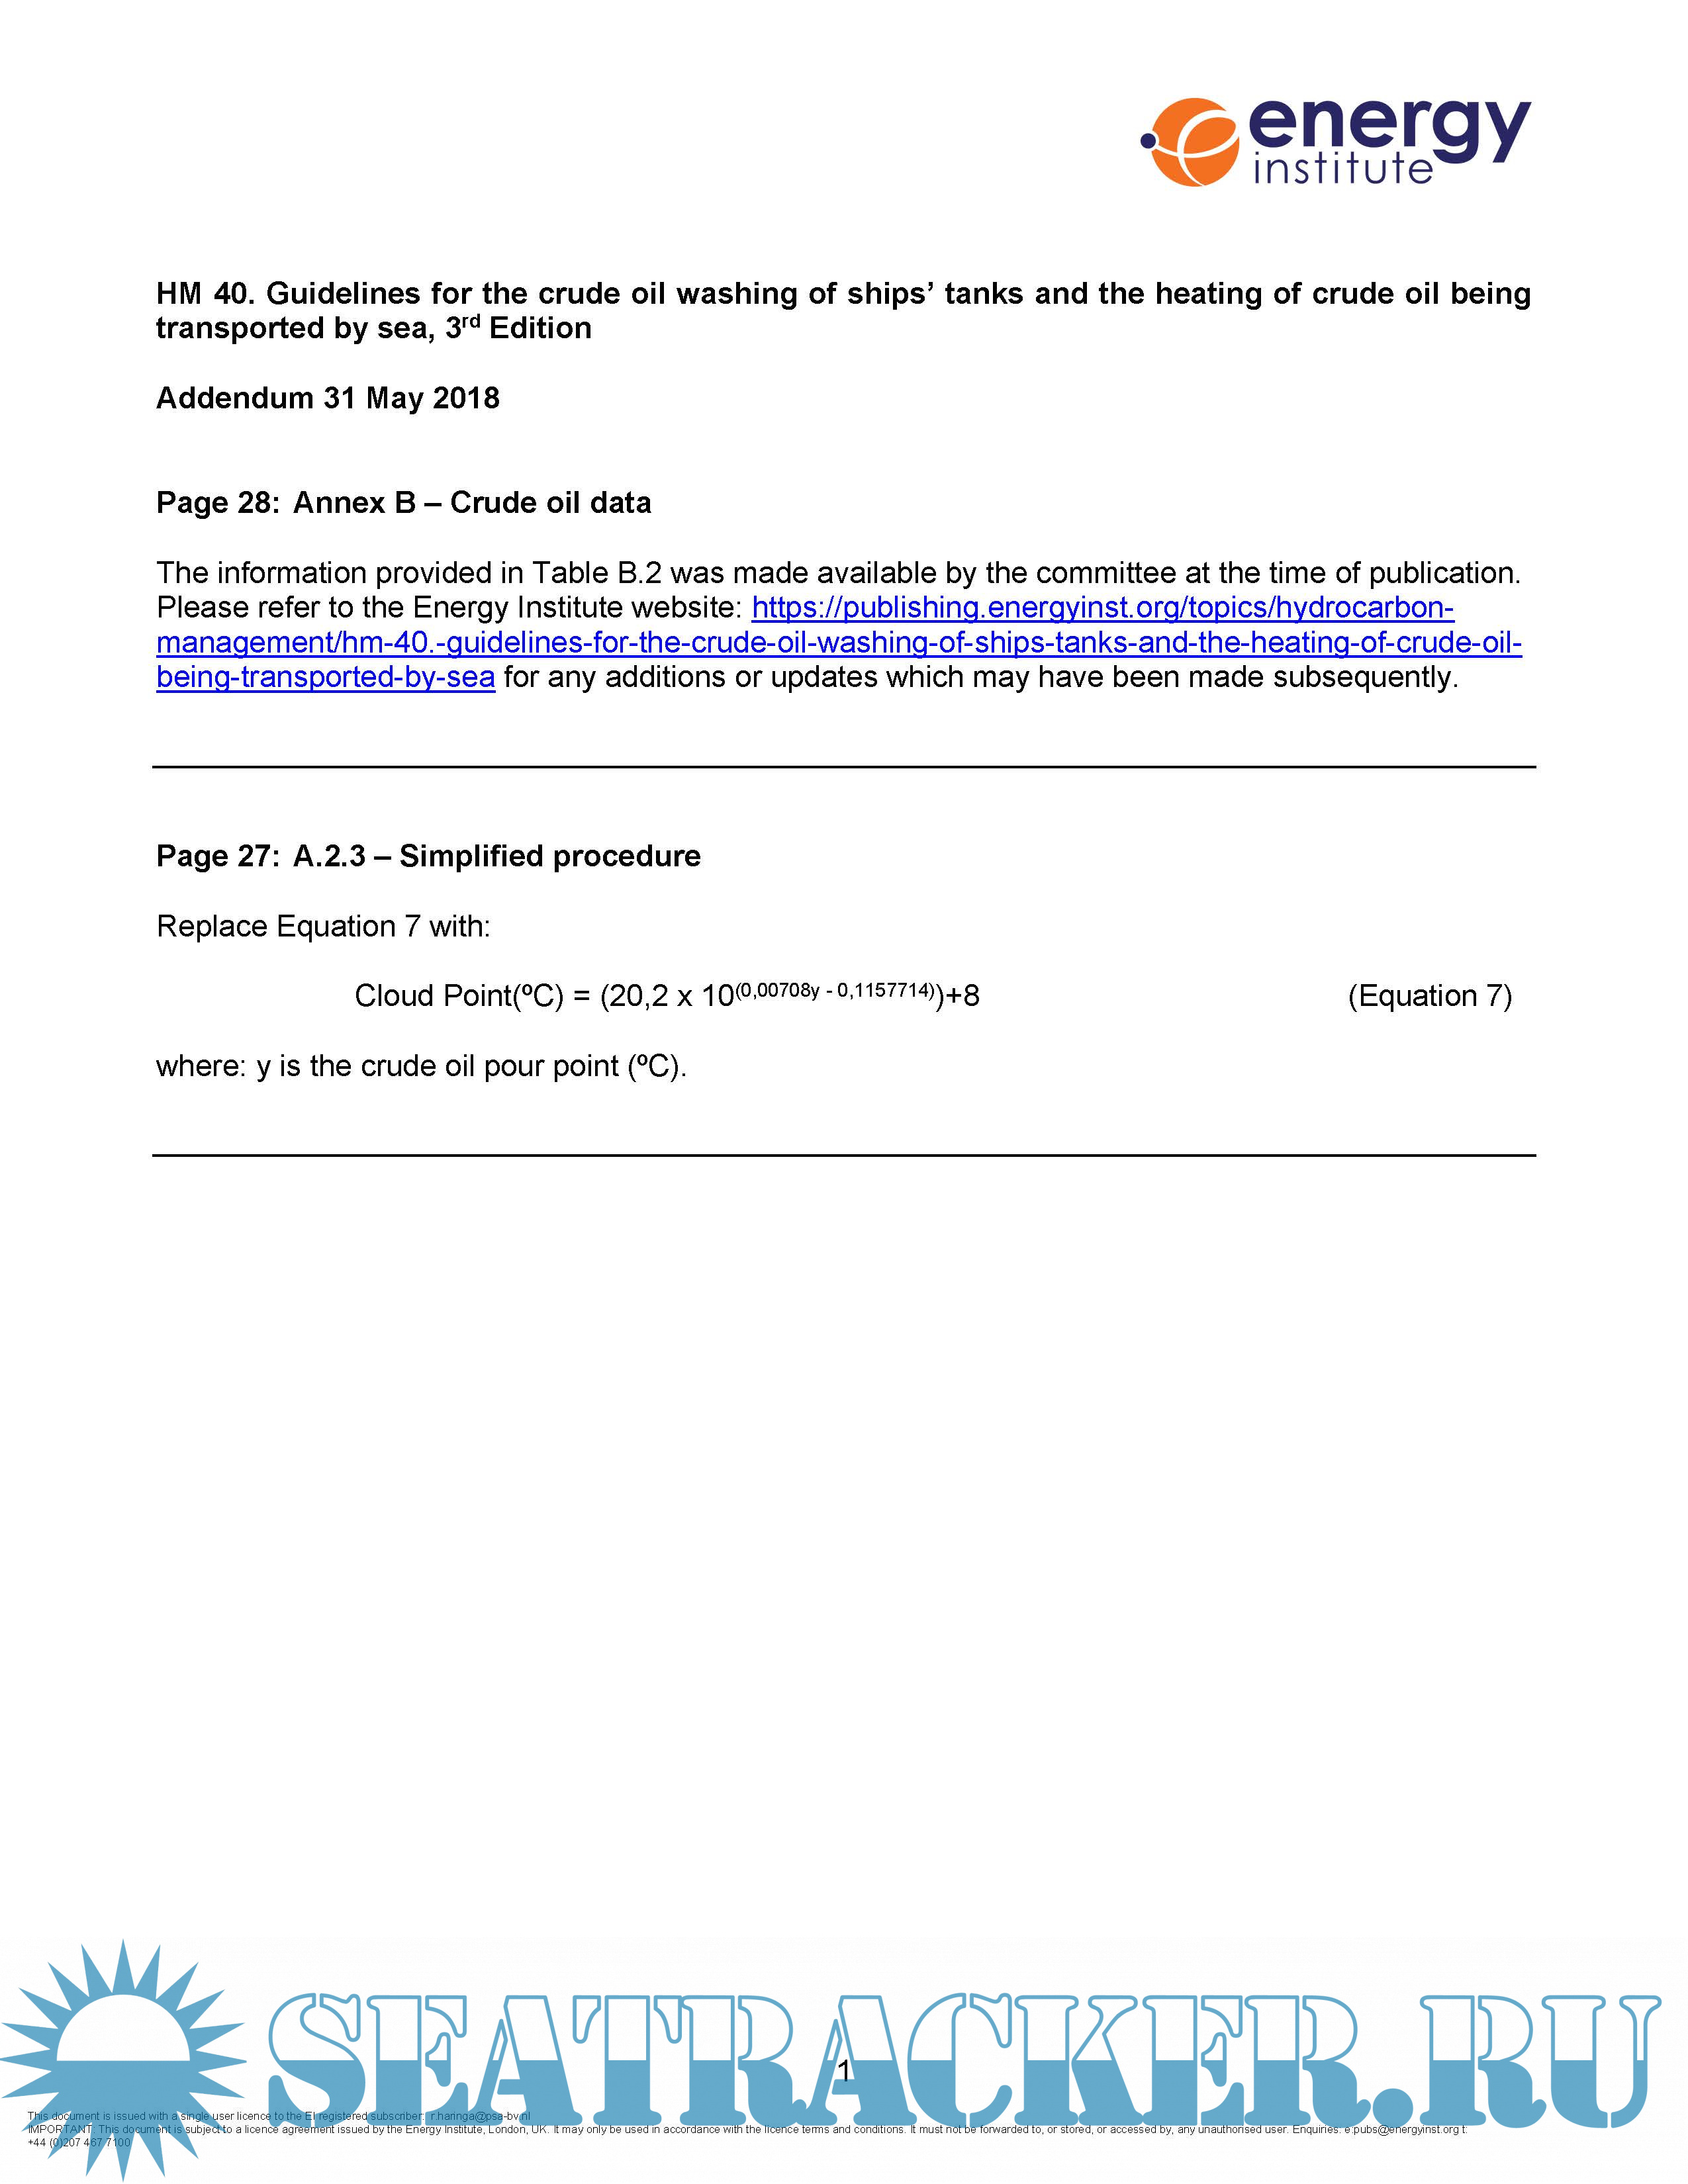 Hydrocarbon management HM 40 - Guidelines for the crude oil